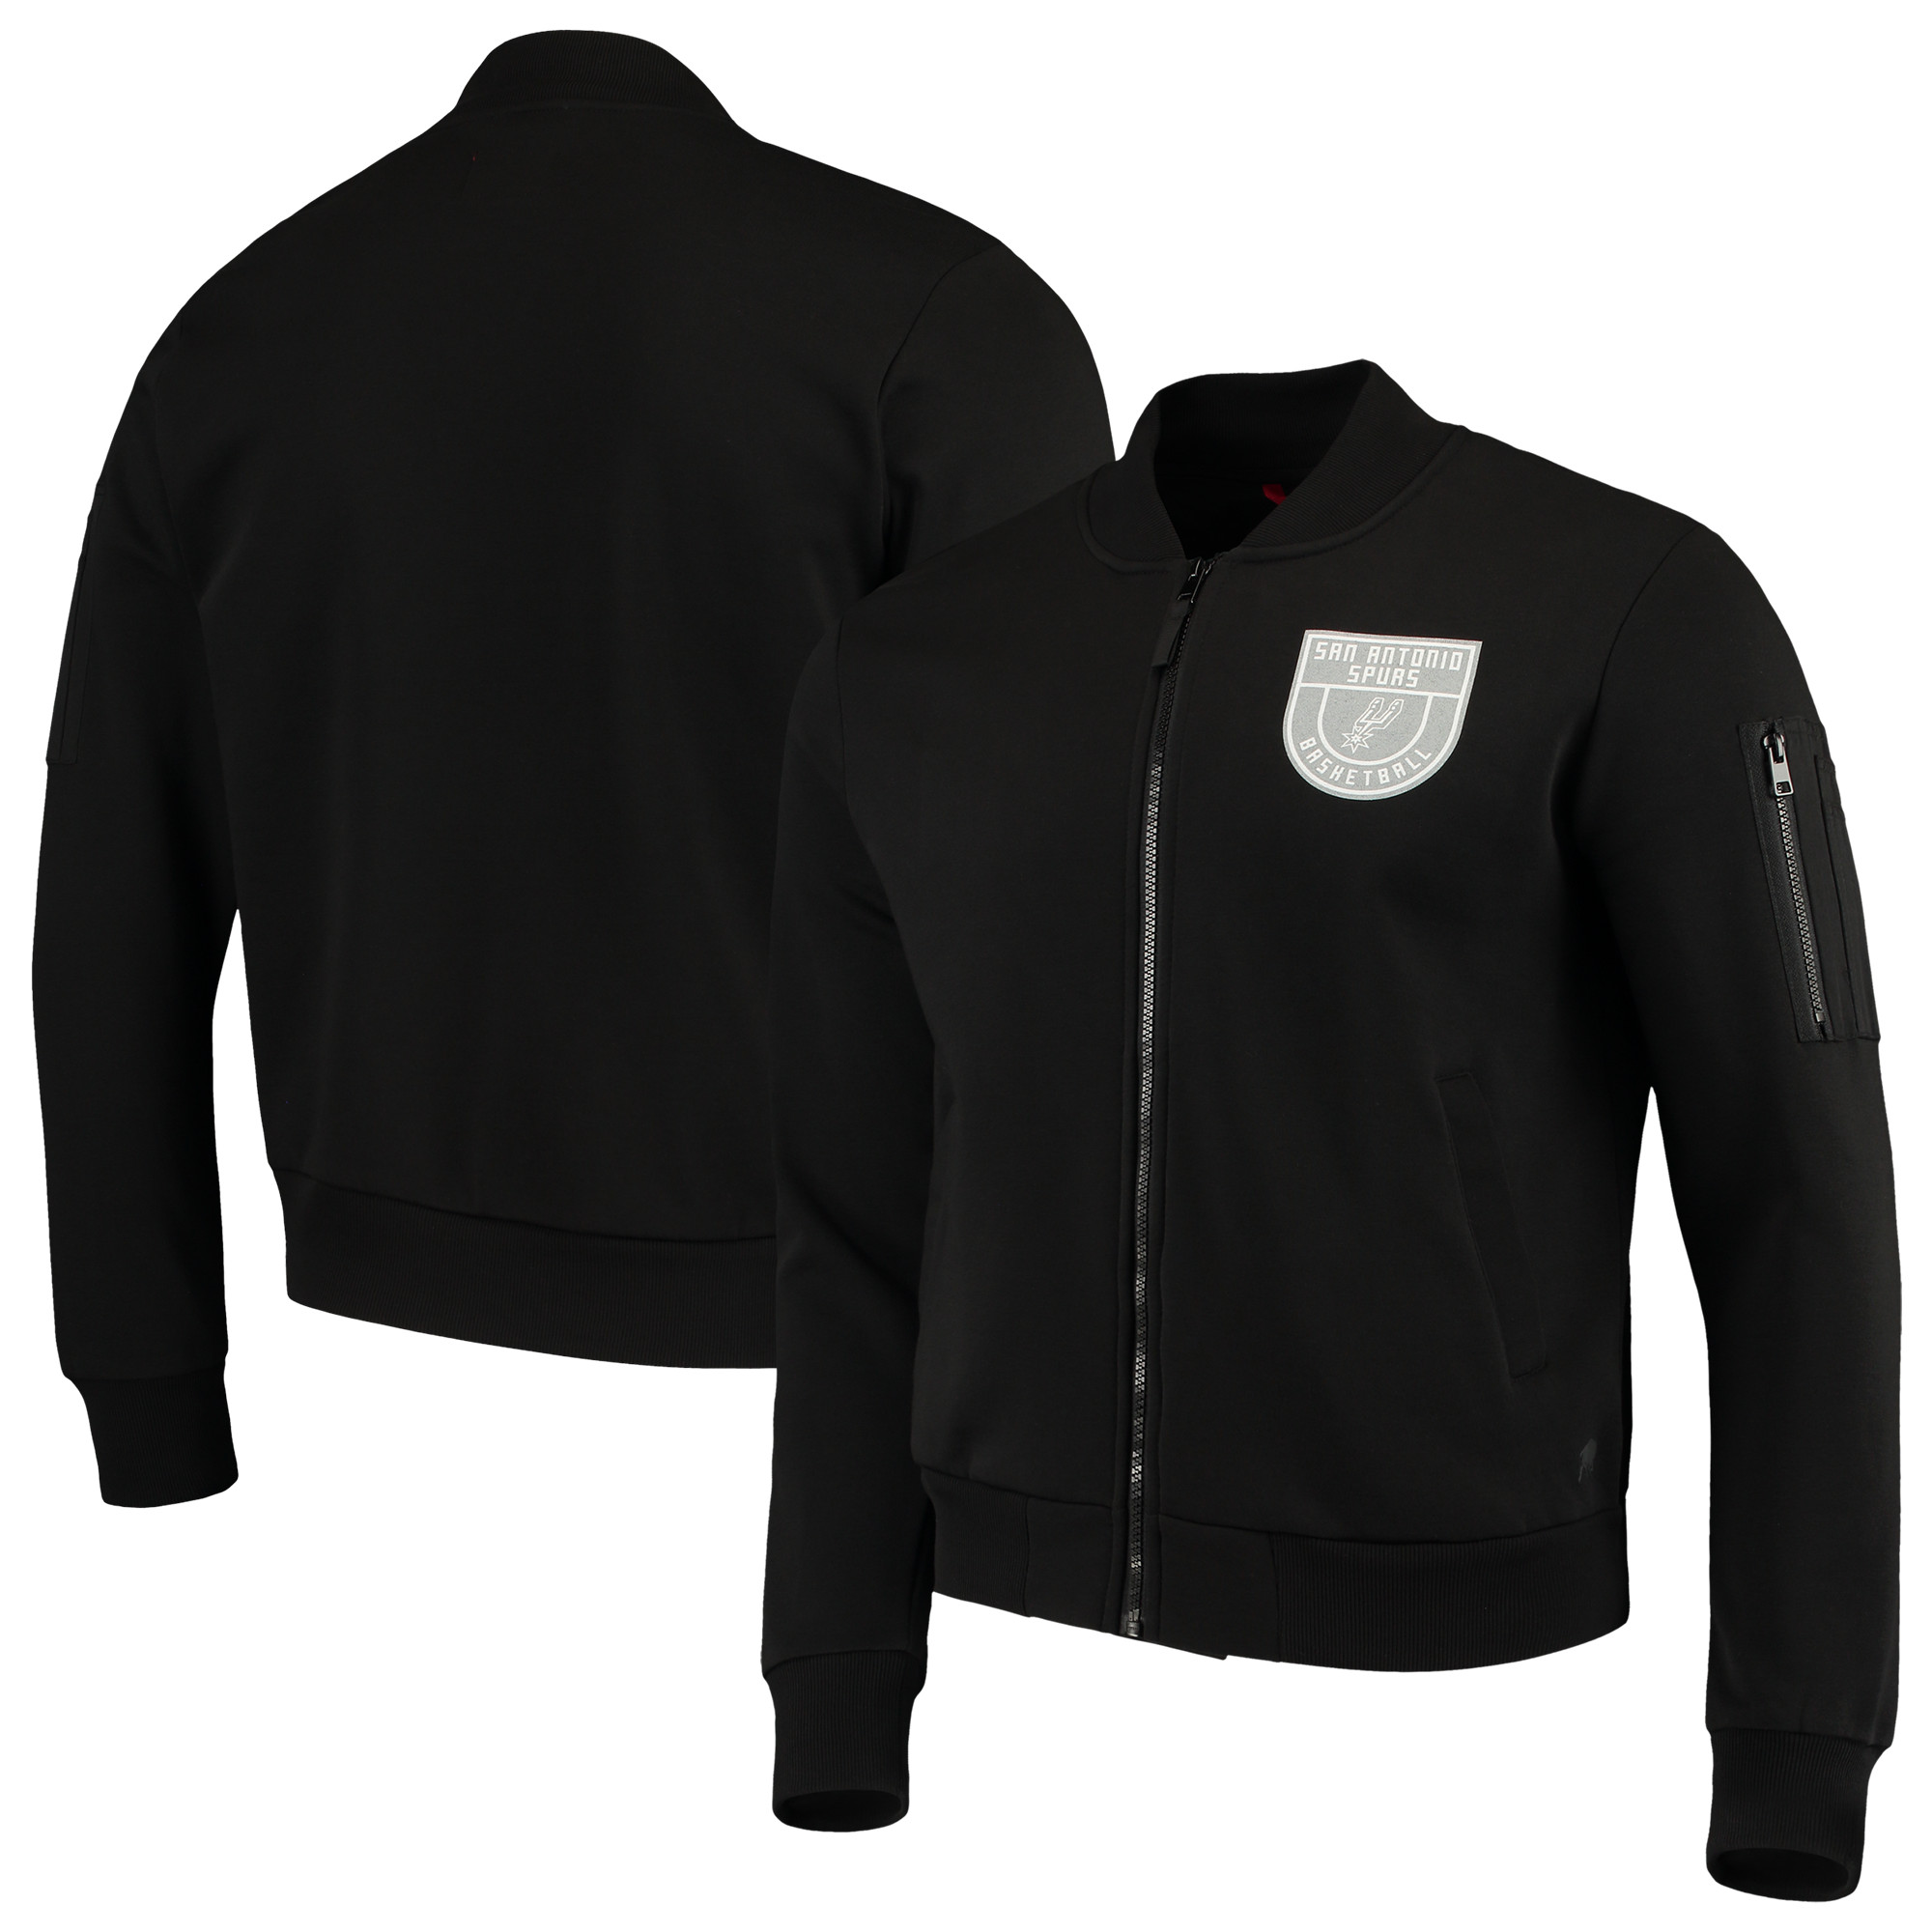 San Antonio Spurs Sportiqe Maverick Fleece Bomber Full-Zip Jacket - Black